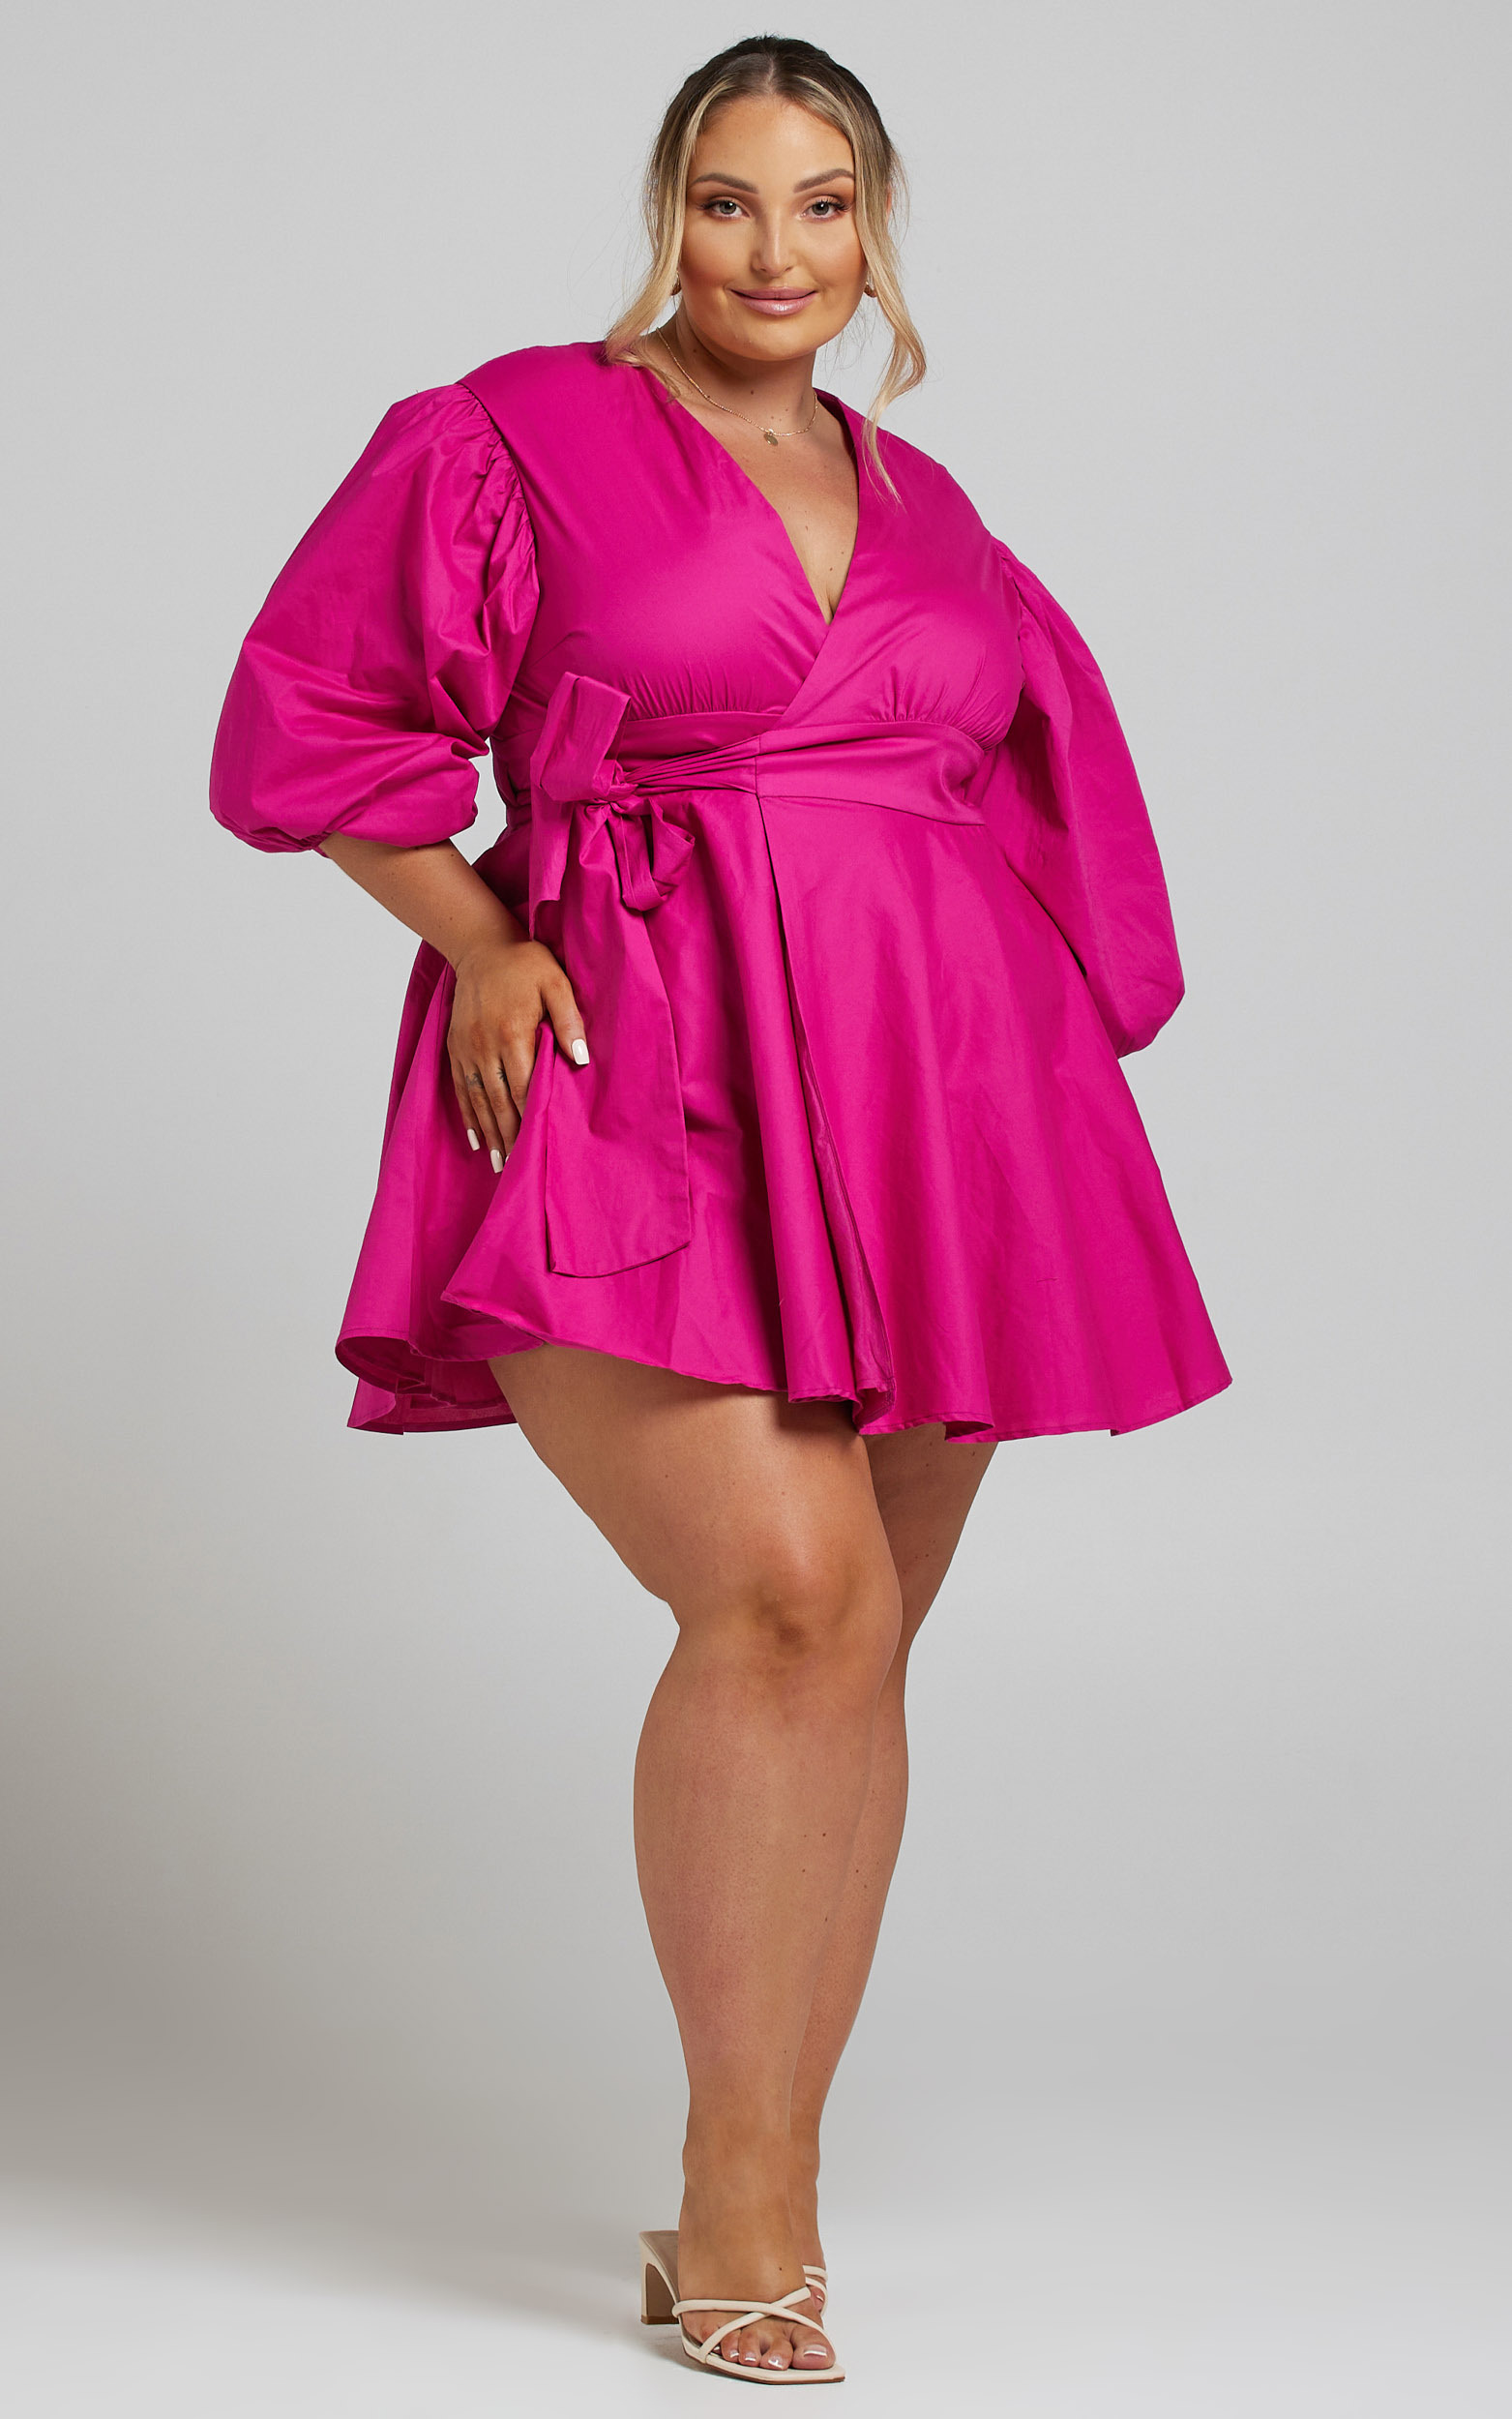 Zyla Puff Sleeve Wrap Mini Dress in Berry - 04, PNK6, hi-res image number null